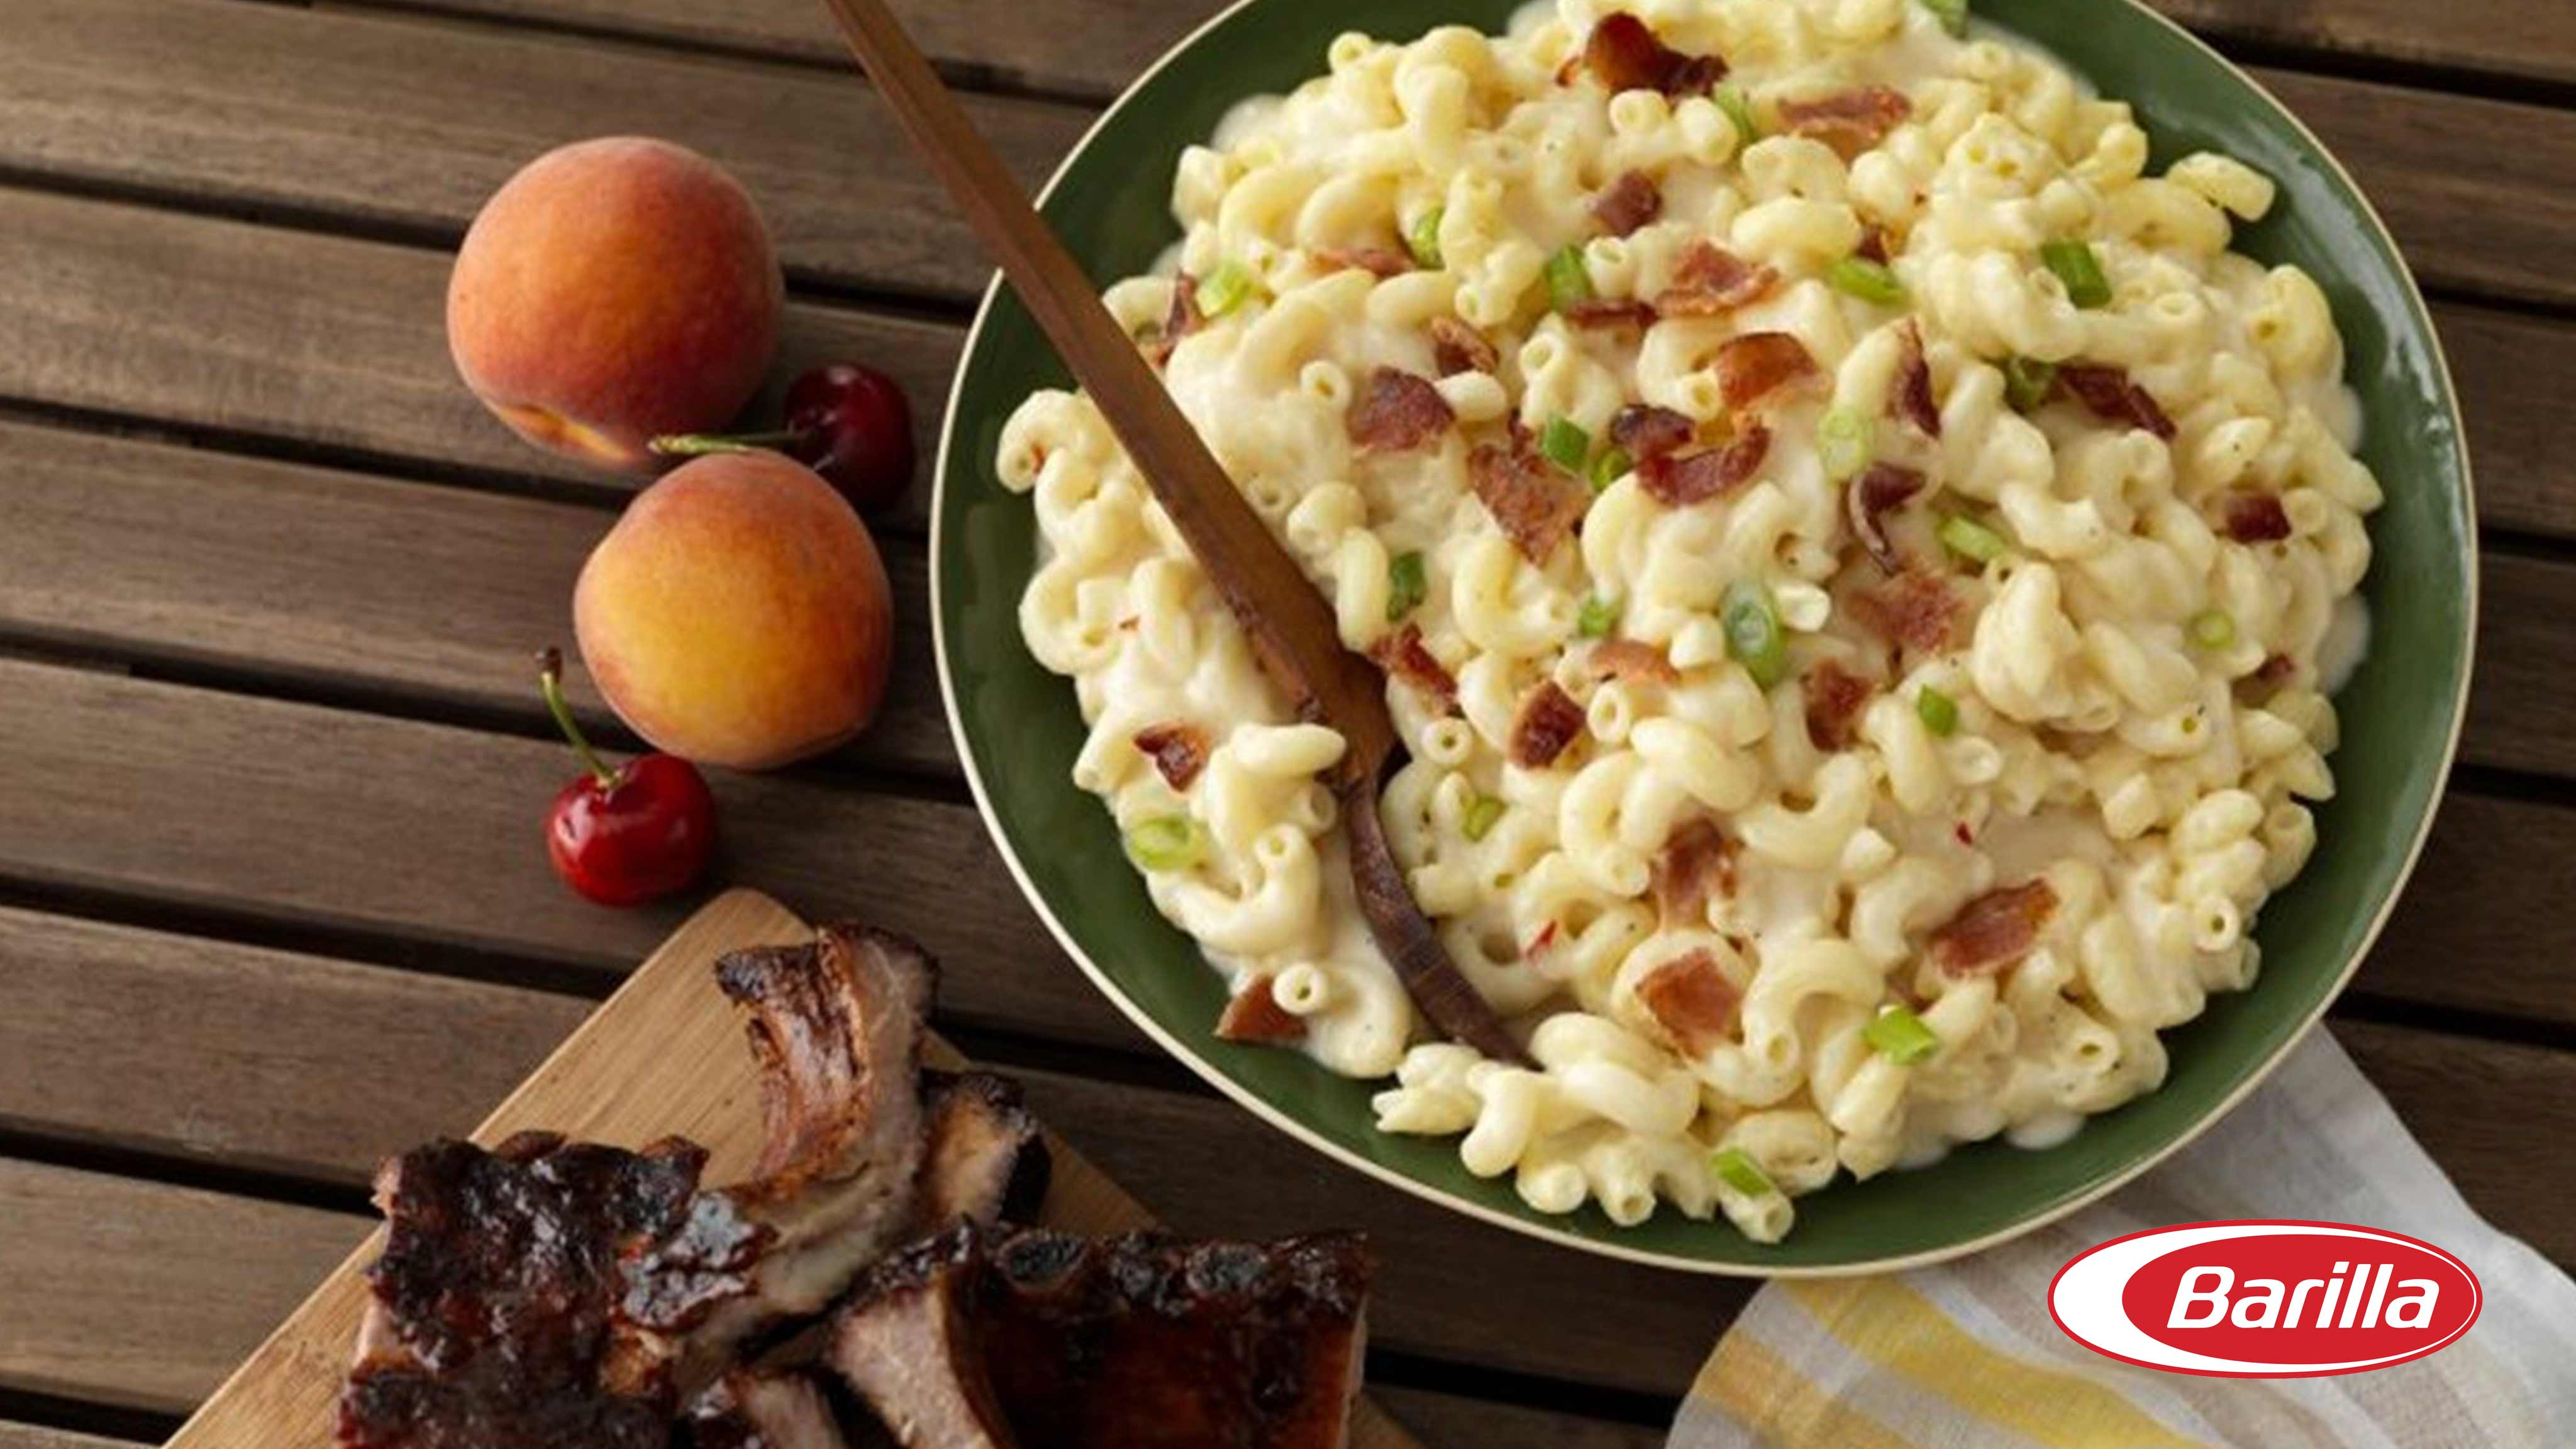 Image for Recipe Barilla® Backyard BBQ Gluten Free Mac and Cheese with Bacon